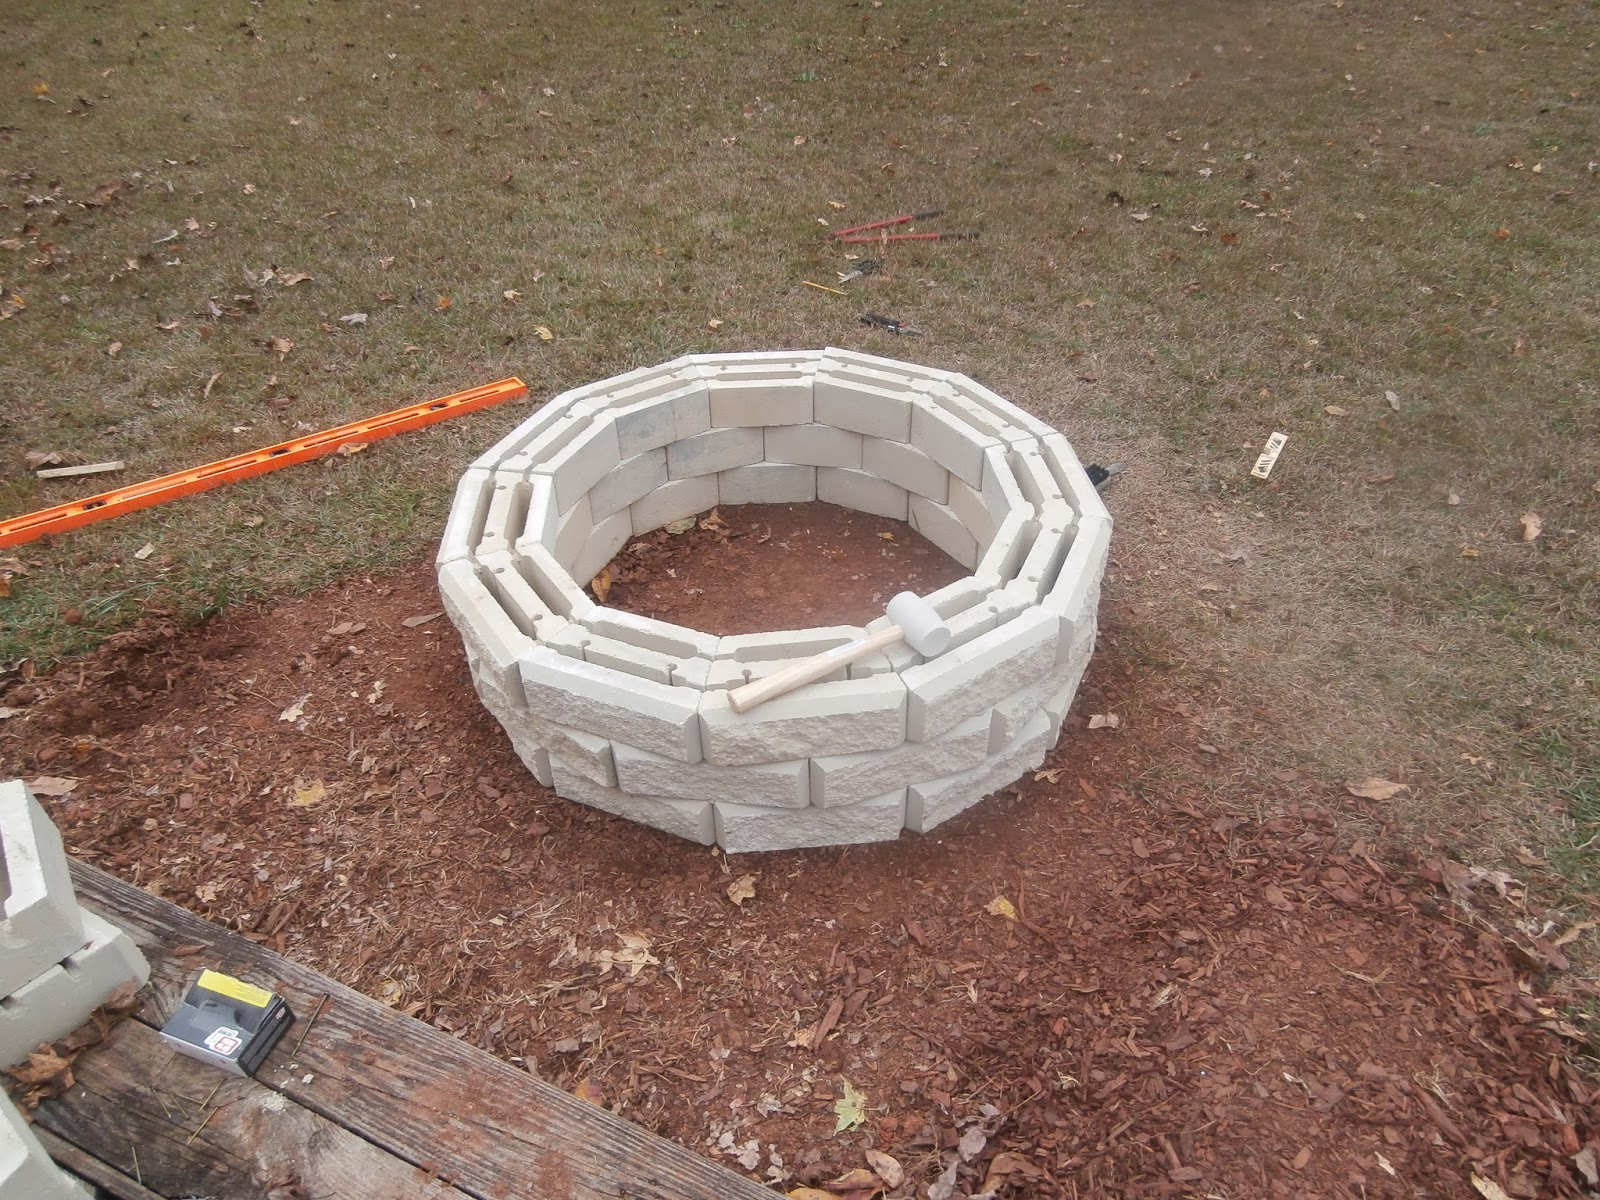 used masonry cement to hold them together